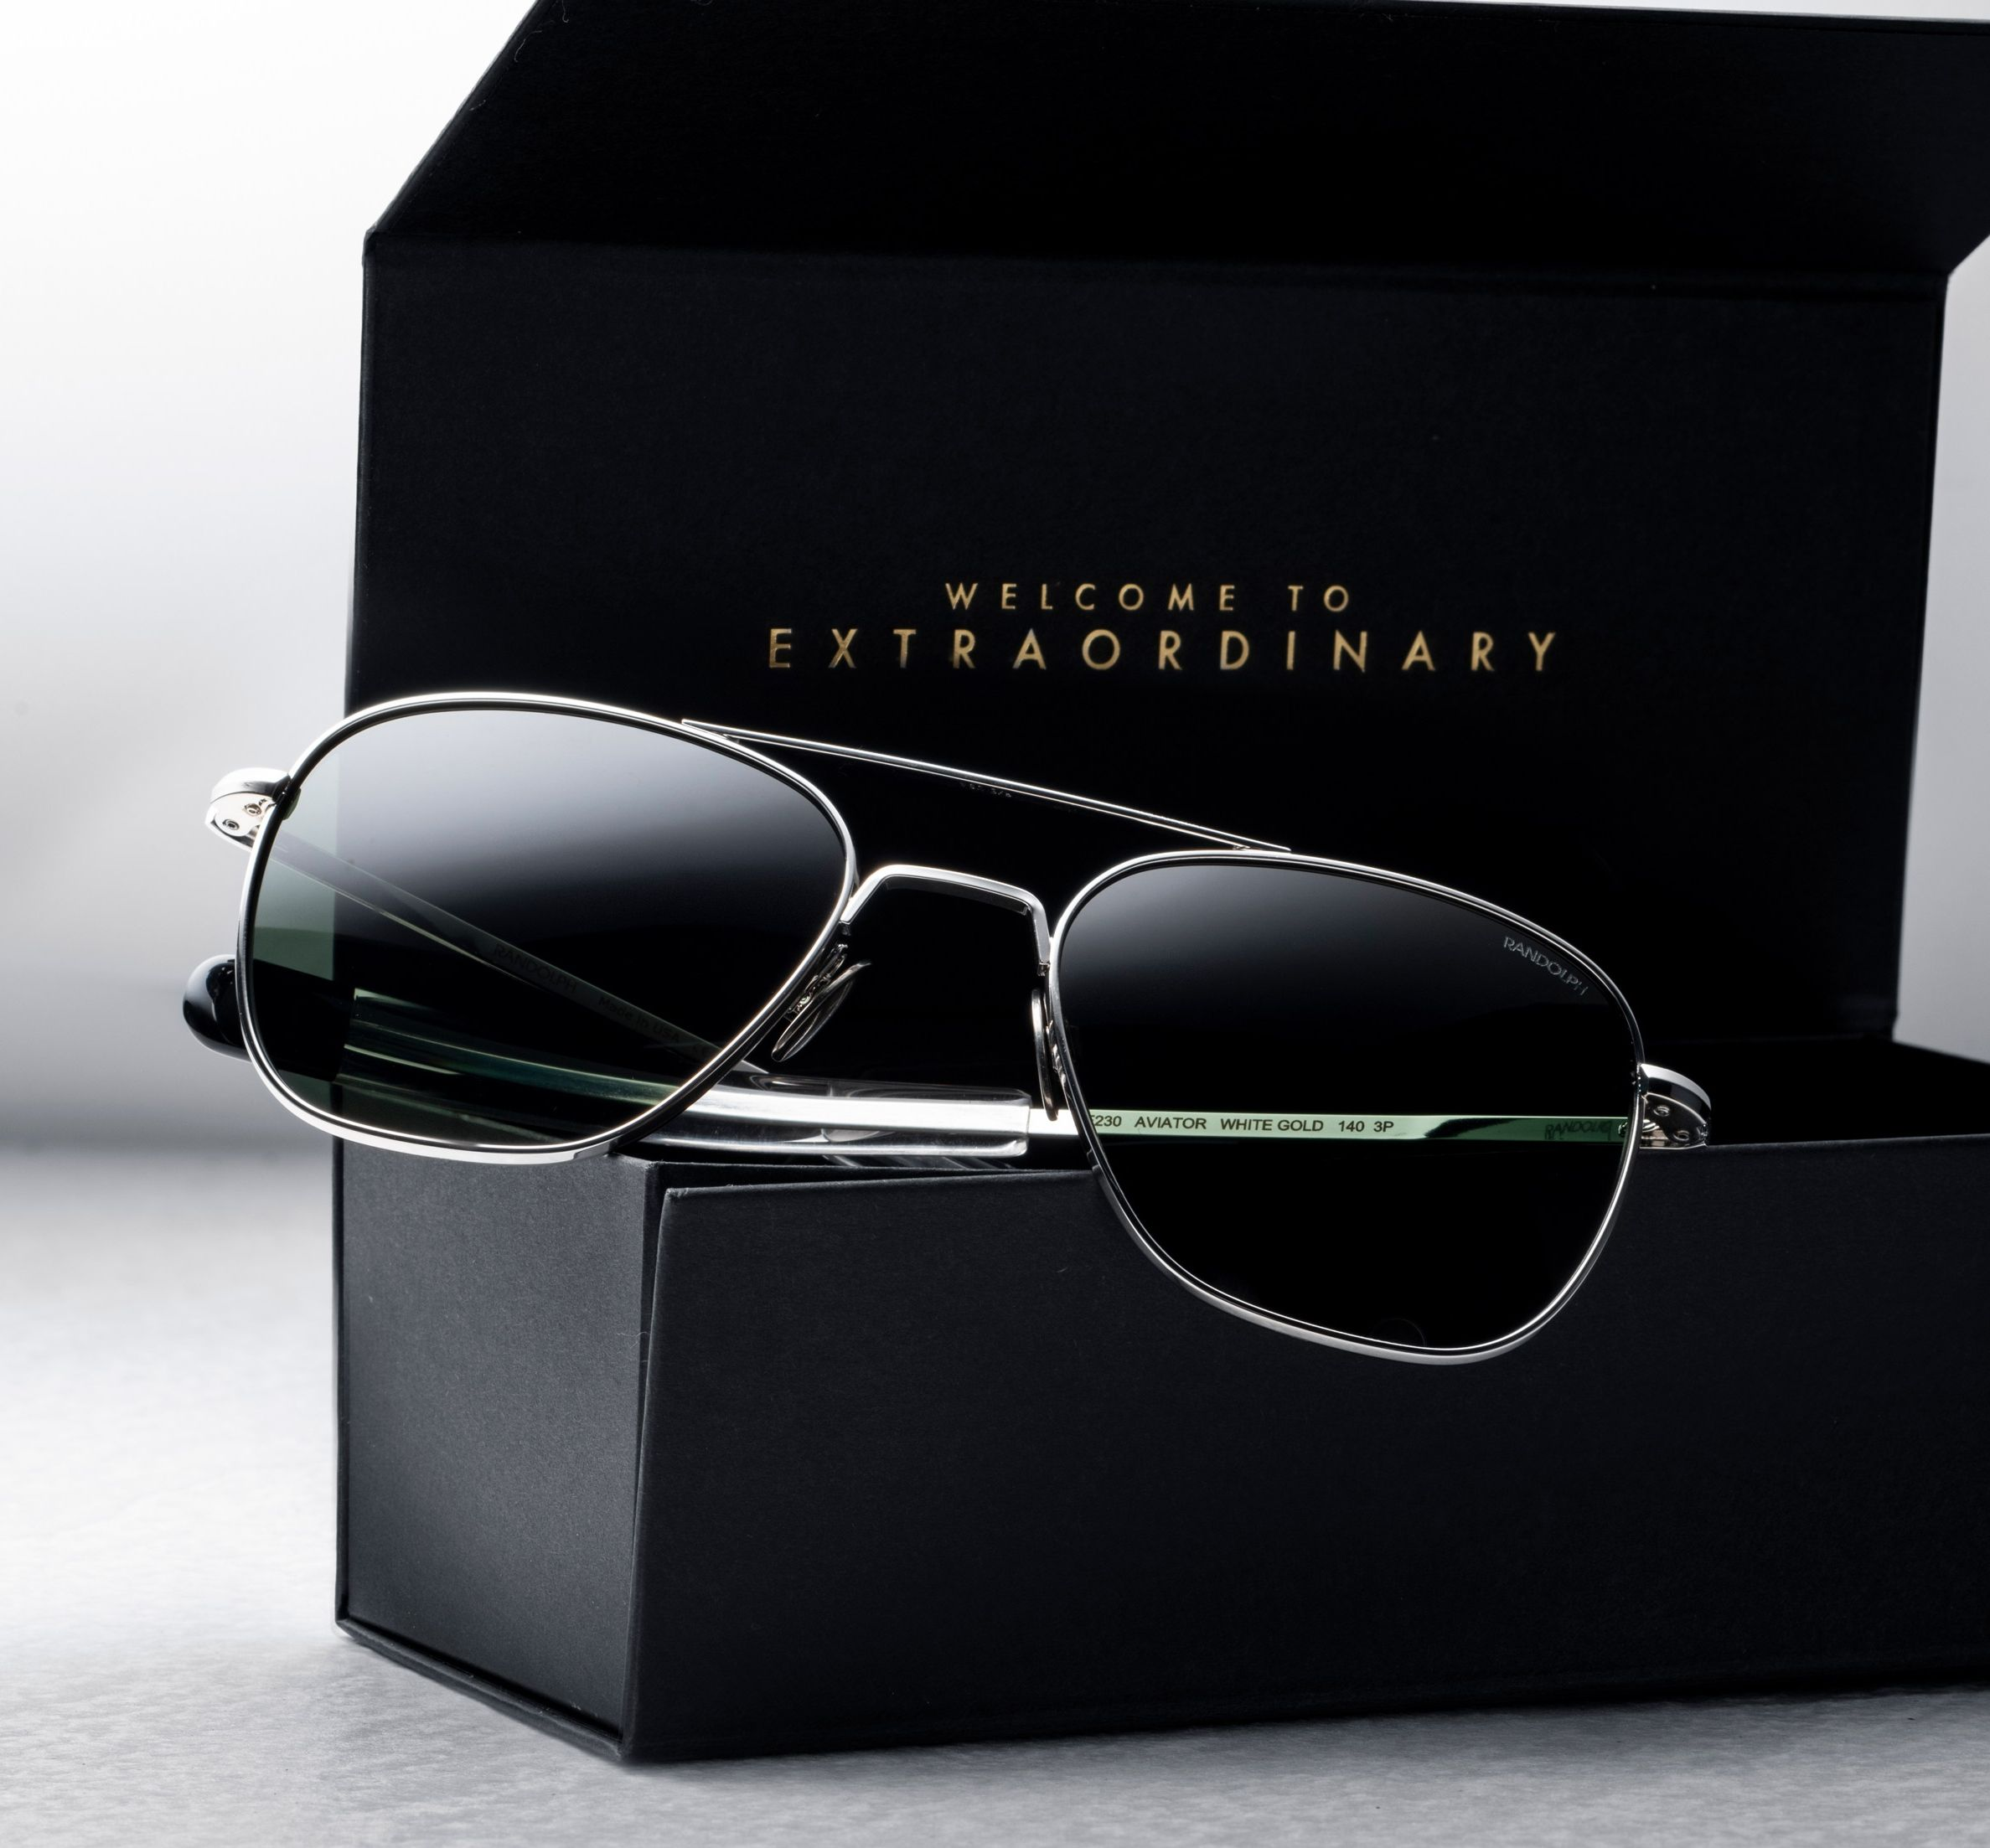 A Gift Guaranteed For Life The 23k White Gold Aviators From Our Whitegoldcollection Myrandolphs Randolphusa Gold Sunglasses White Gold Randolph Usa